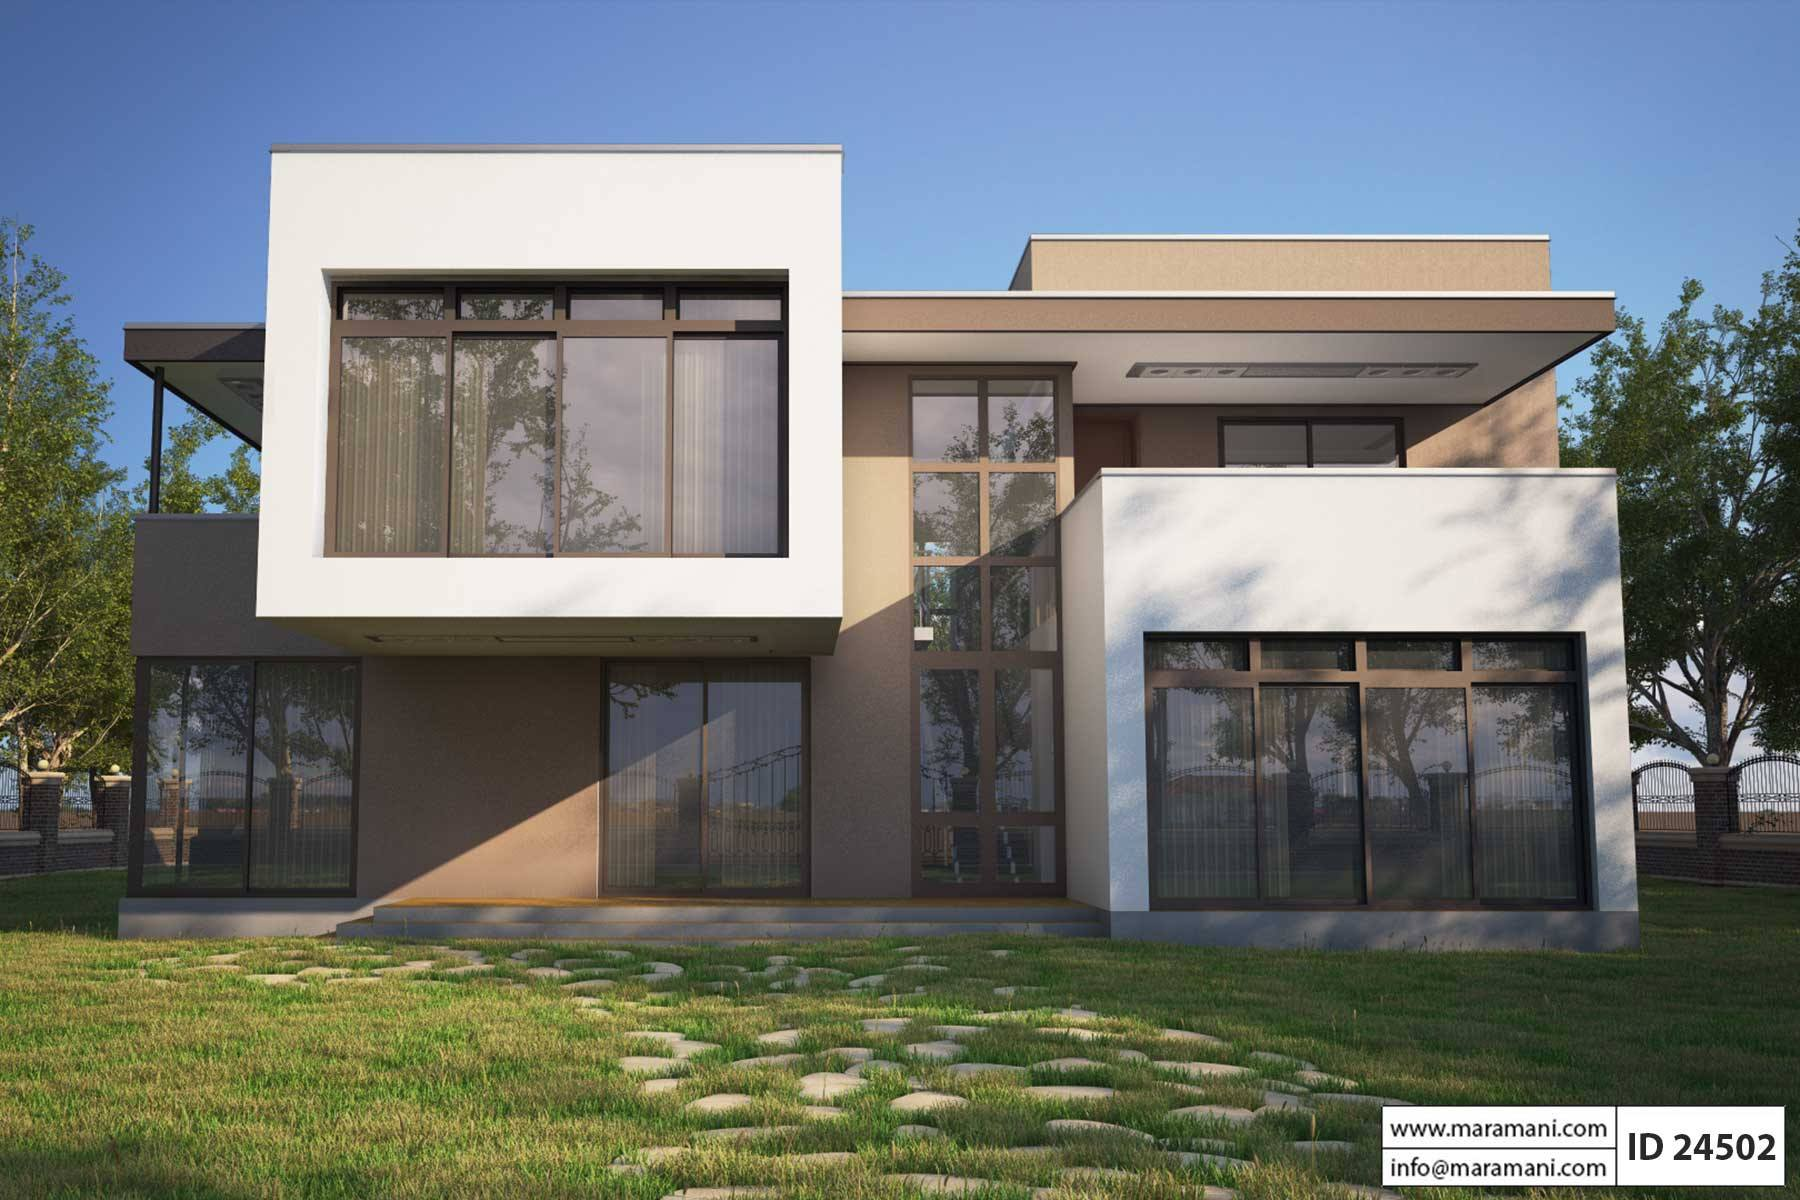 4 bedroom modern house plan id 24502 house plans maramani for 4 bedroom modern house plans